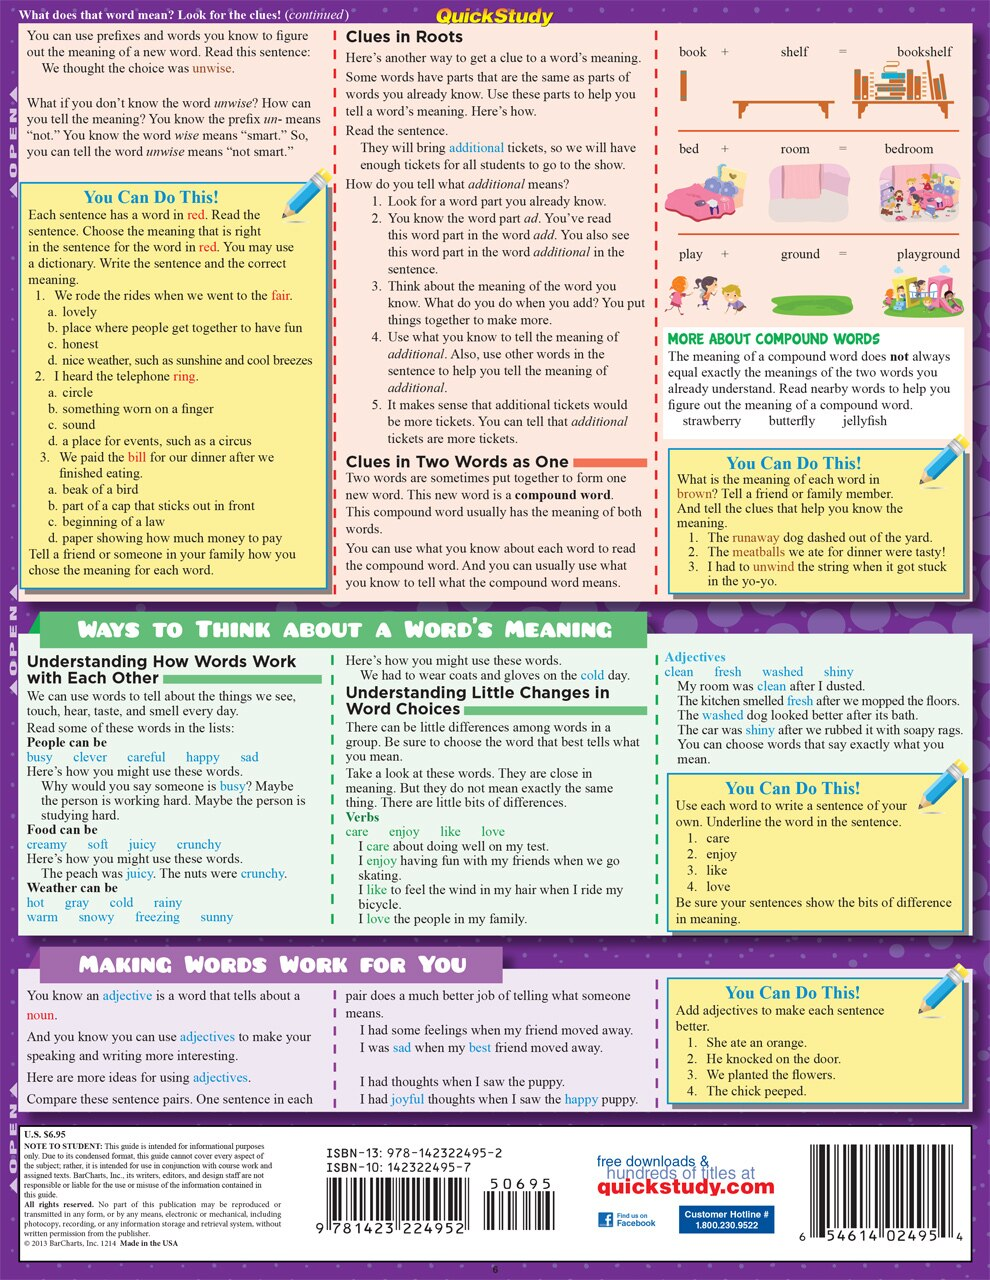 Quick Study QuickStudy English: 2nd Grade Laminated Study Guide BarCharts Publishing Grade School Academics Reference Back Image